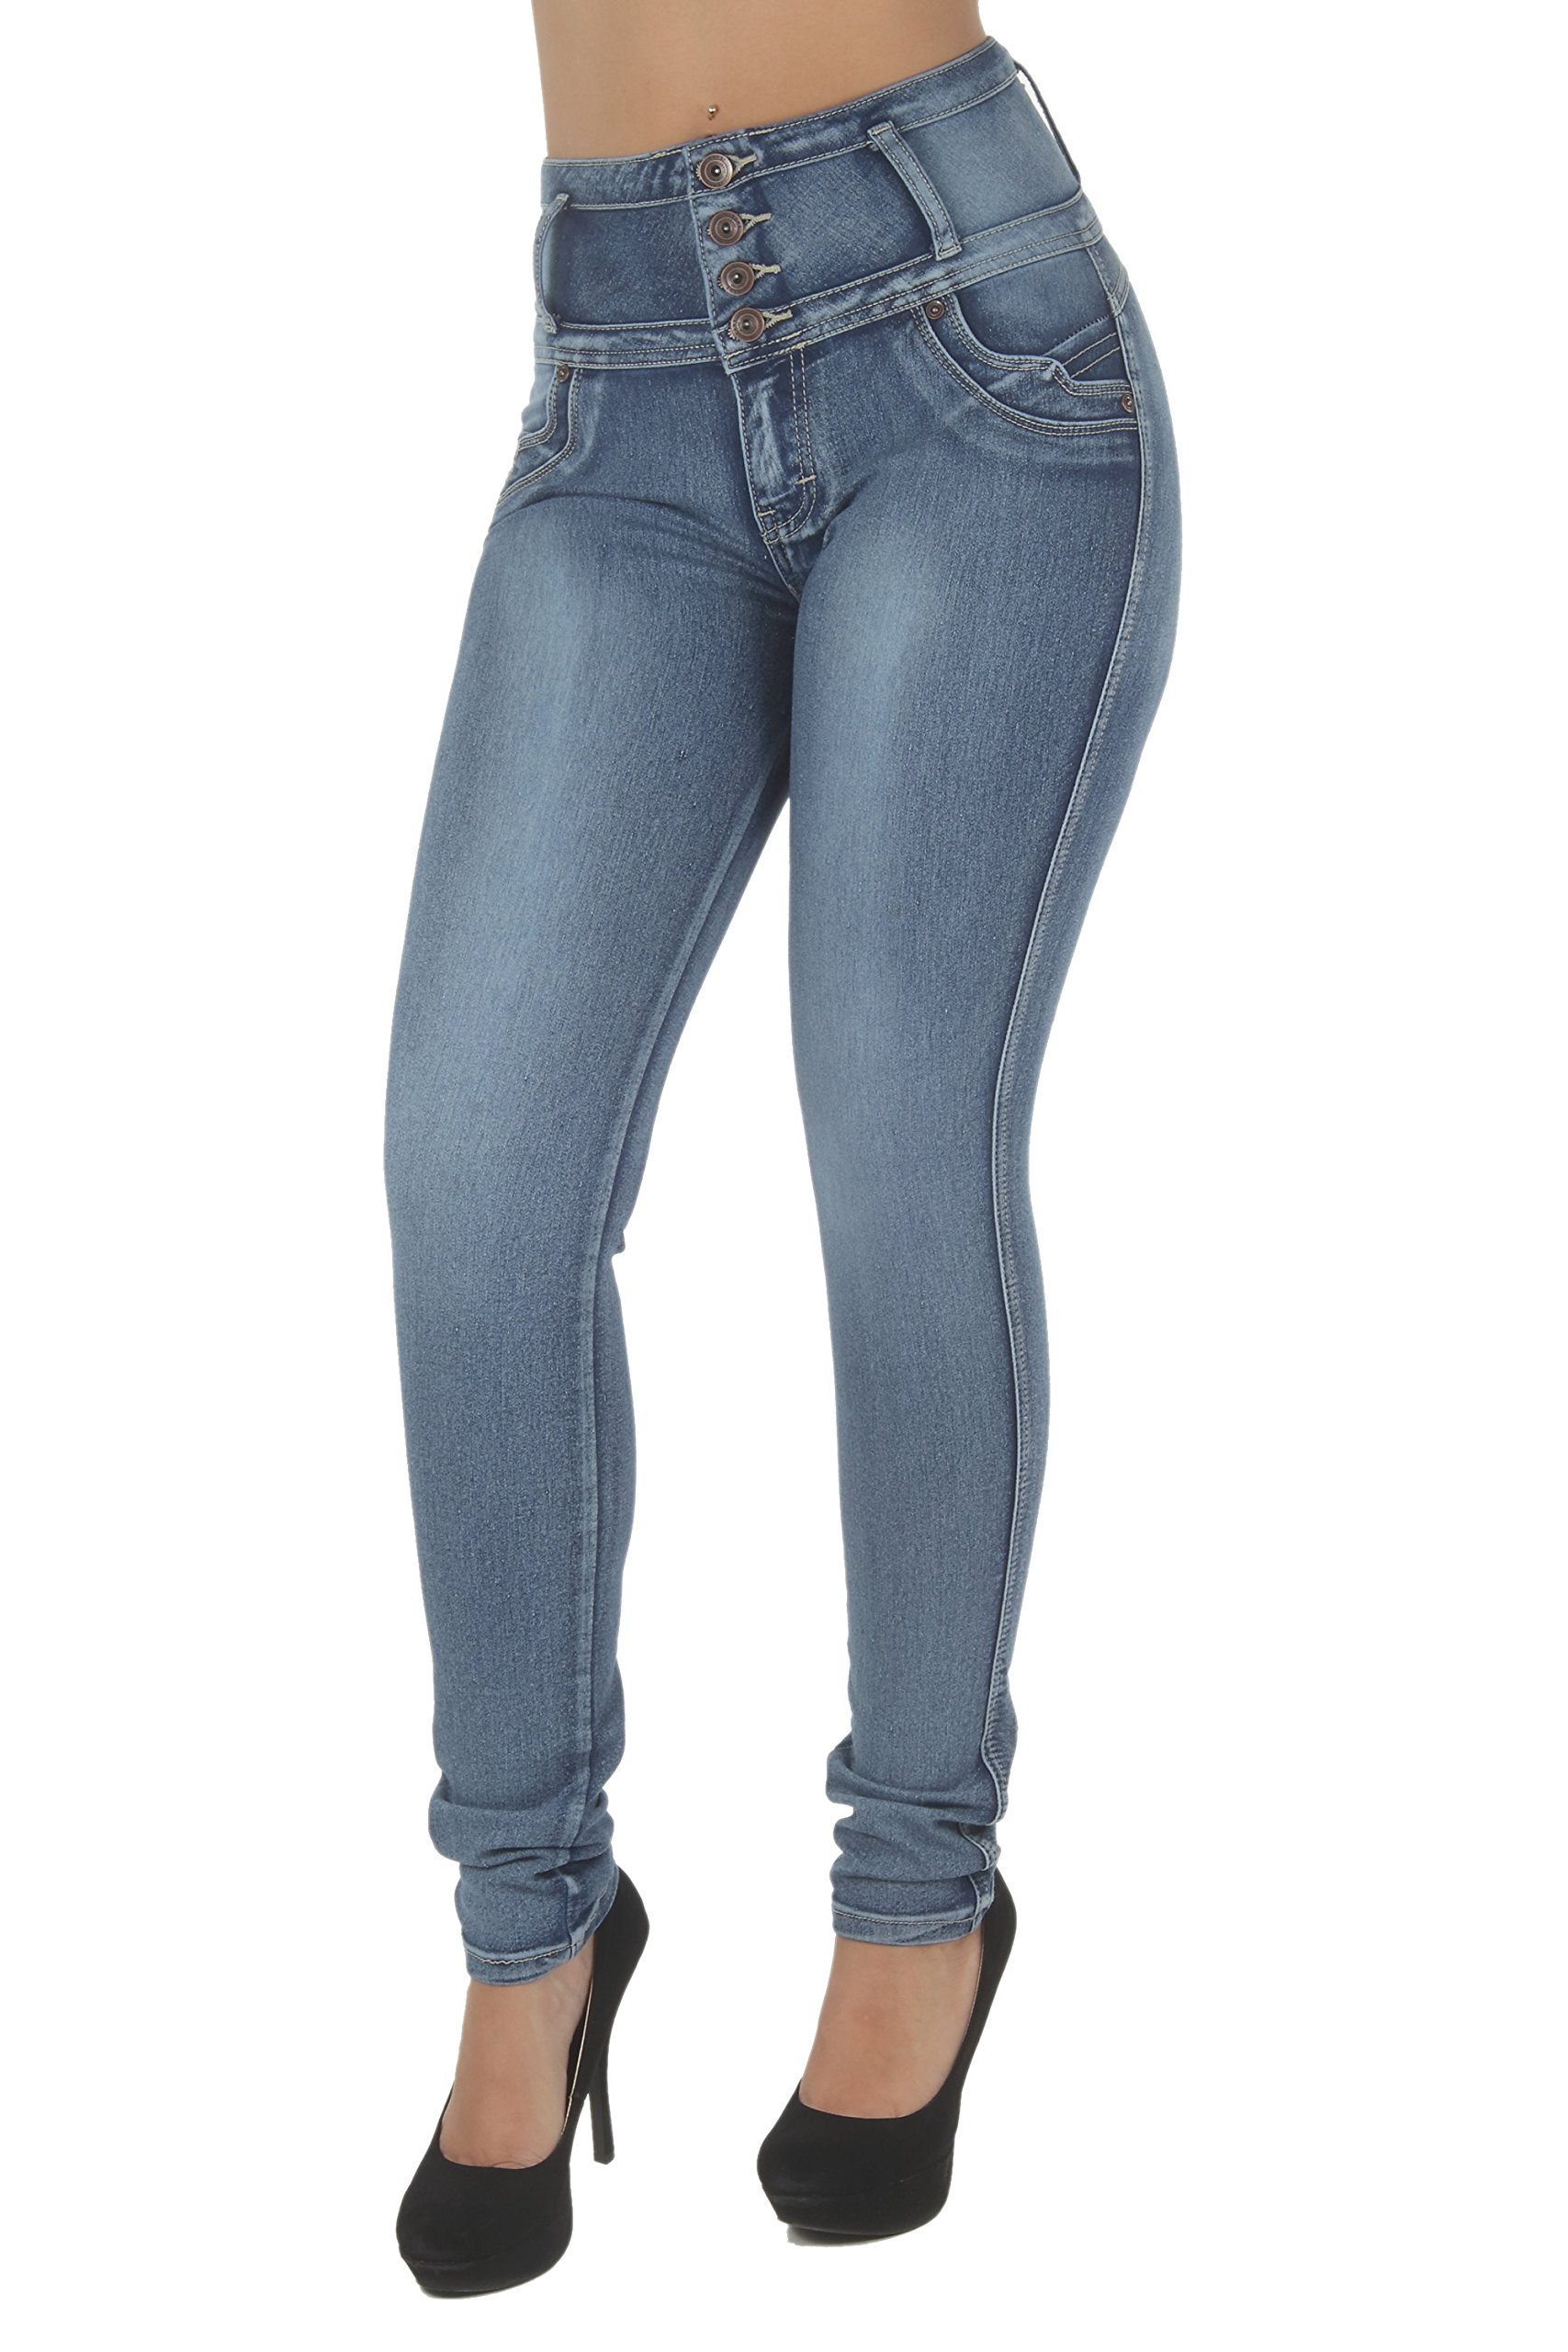 Fashion2Love N1191 – Colombian Design, Butt Lift, Levanta Cola, High Waist Sexy Skinny Jeans in Washed Blue Size 11